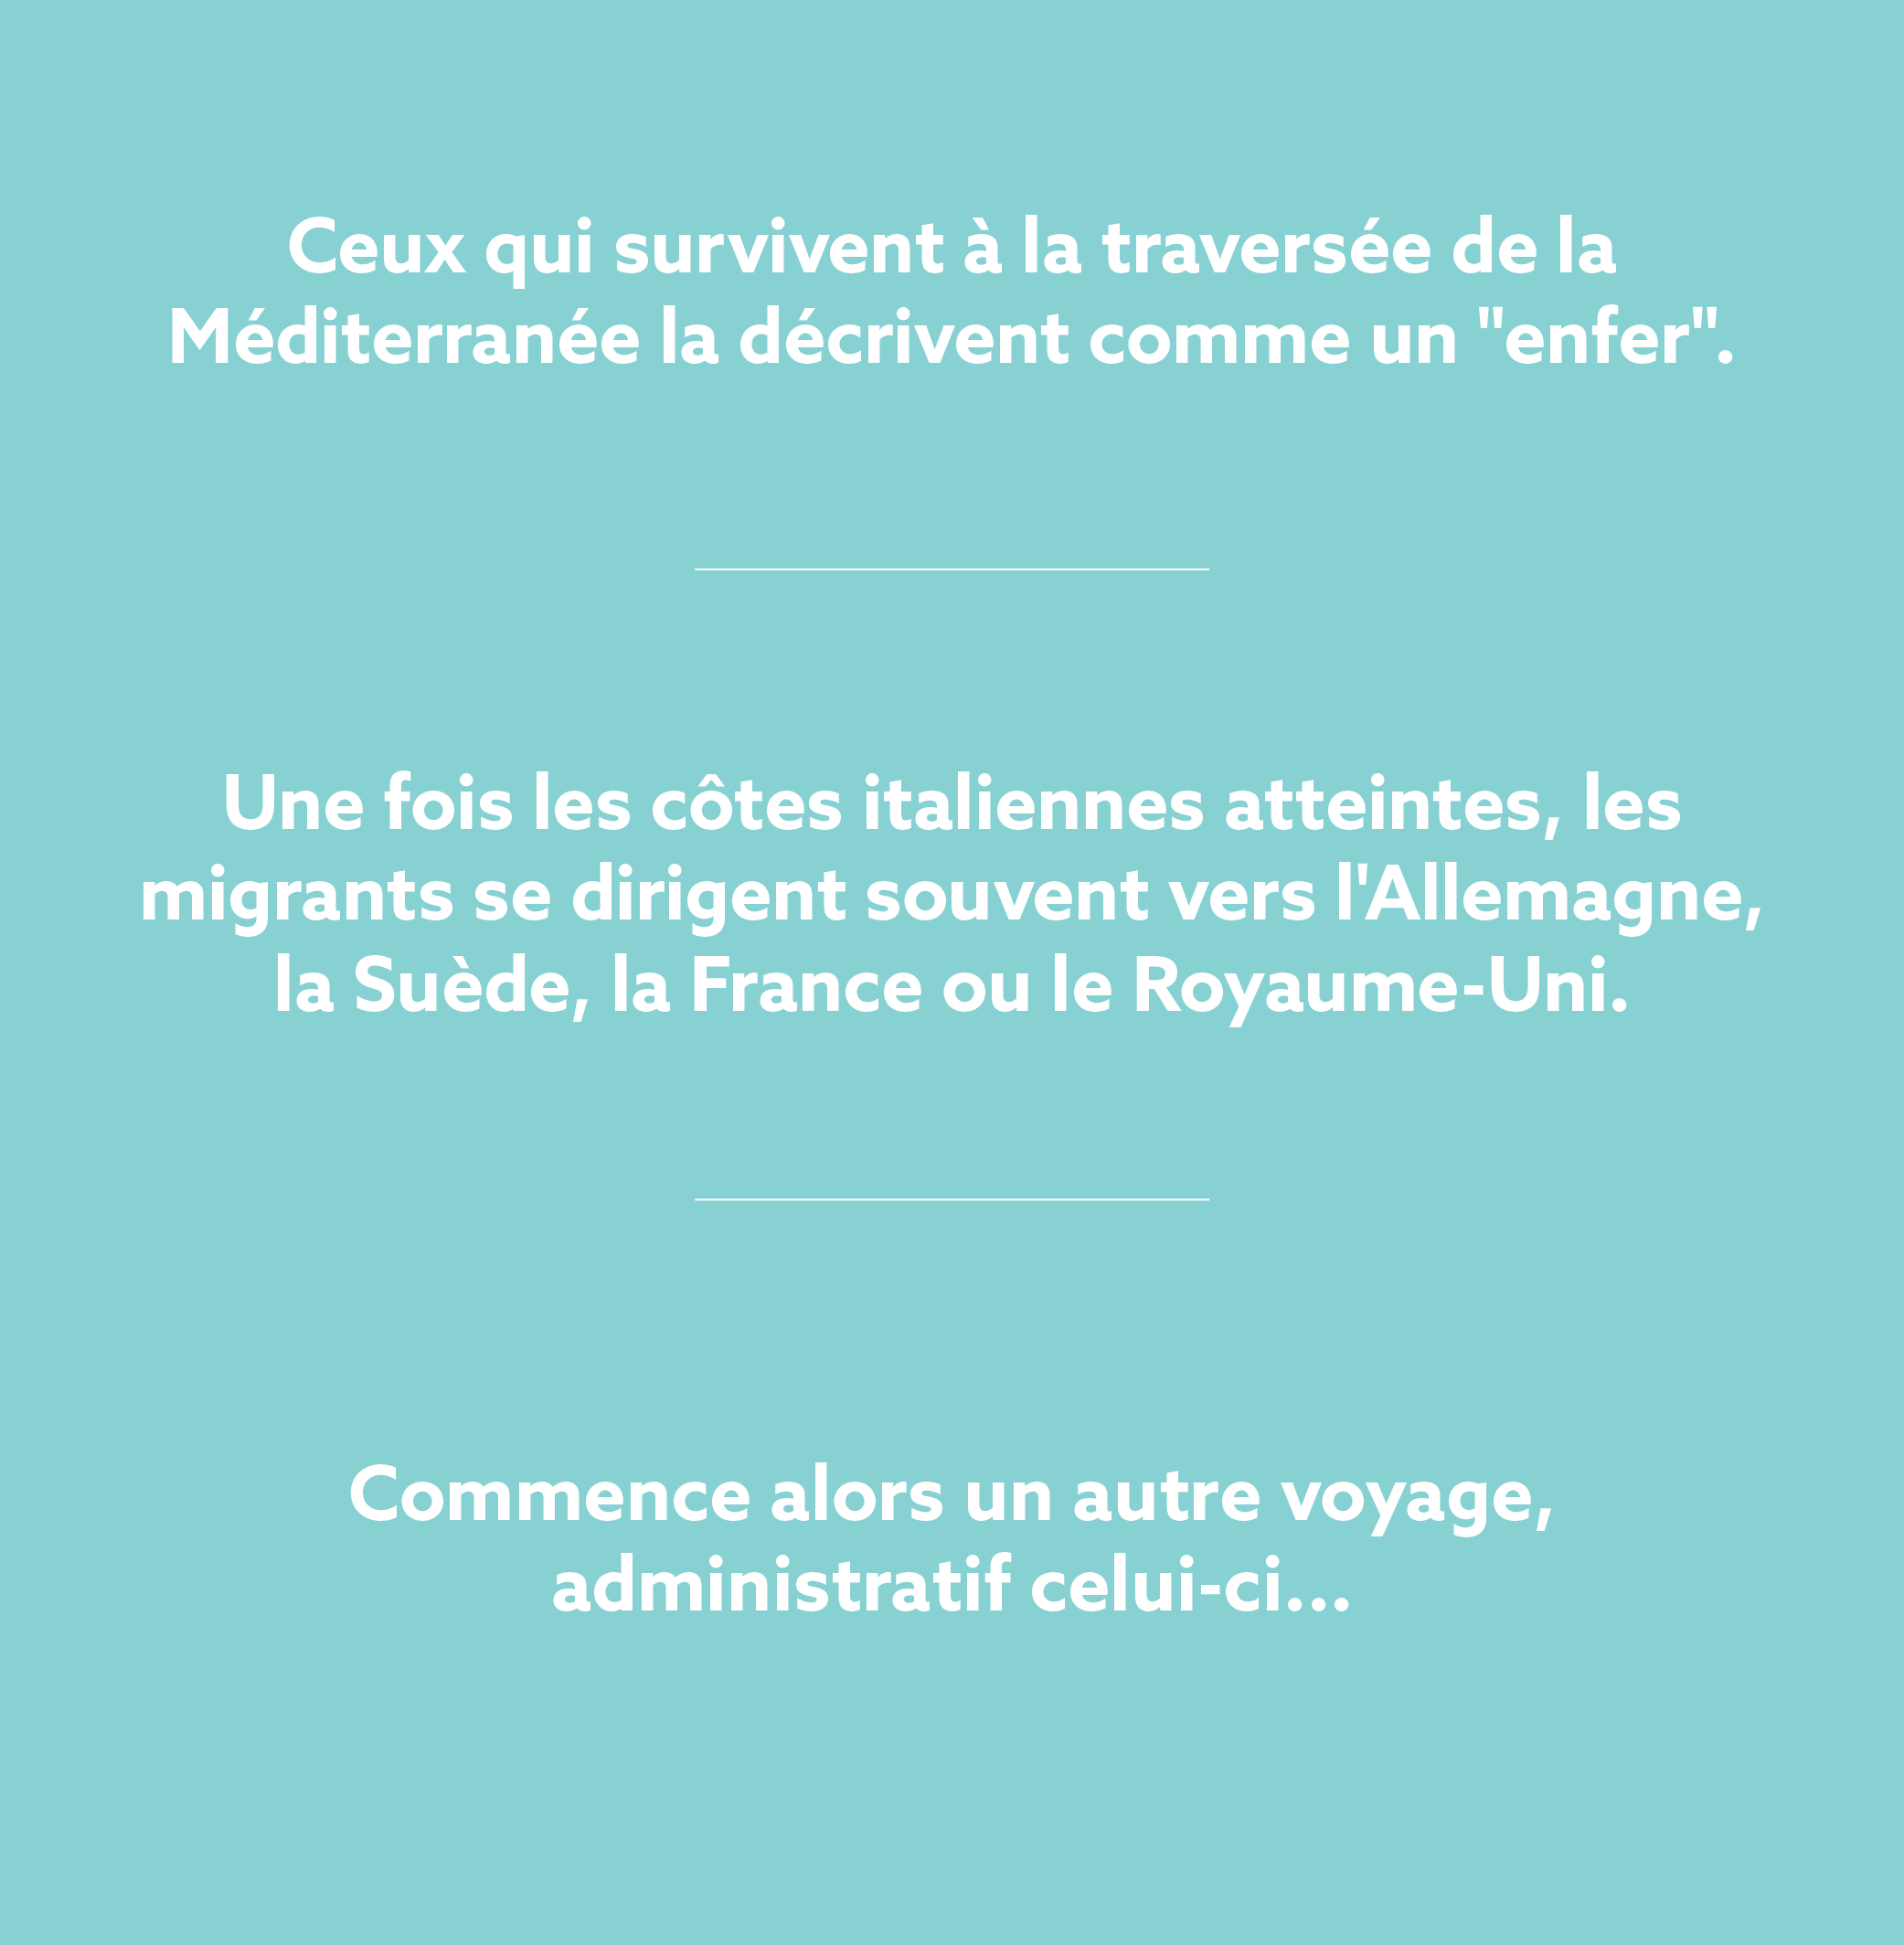 FRENCH_Migrants_Organized-12.png